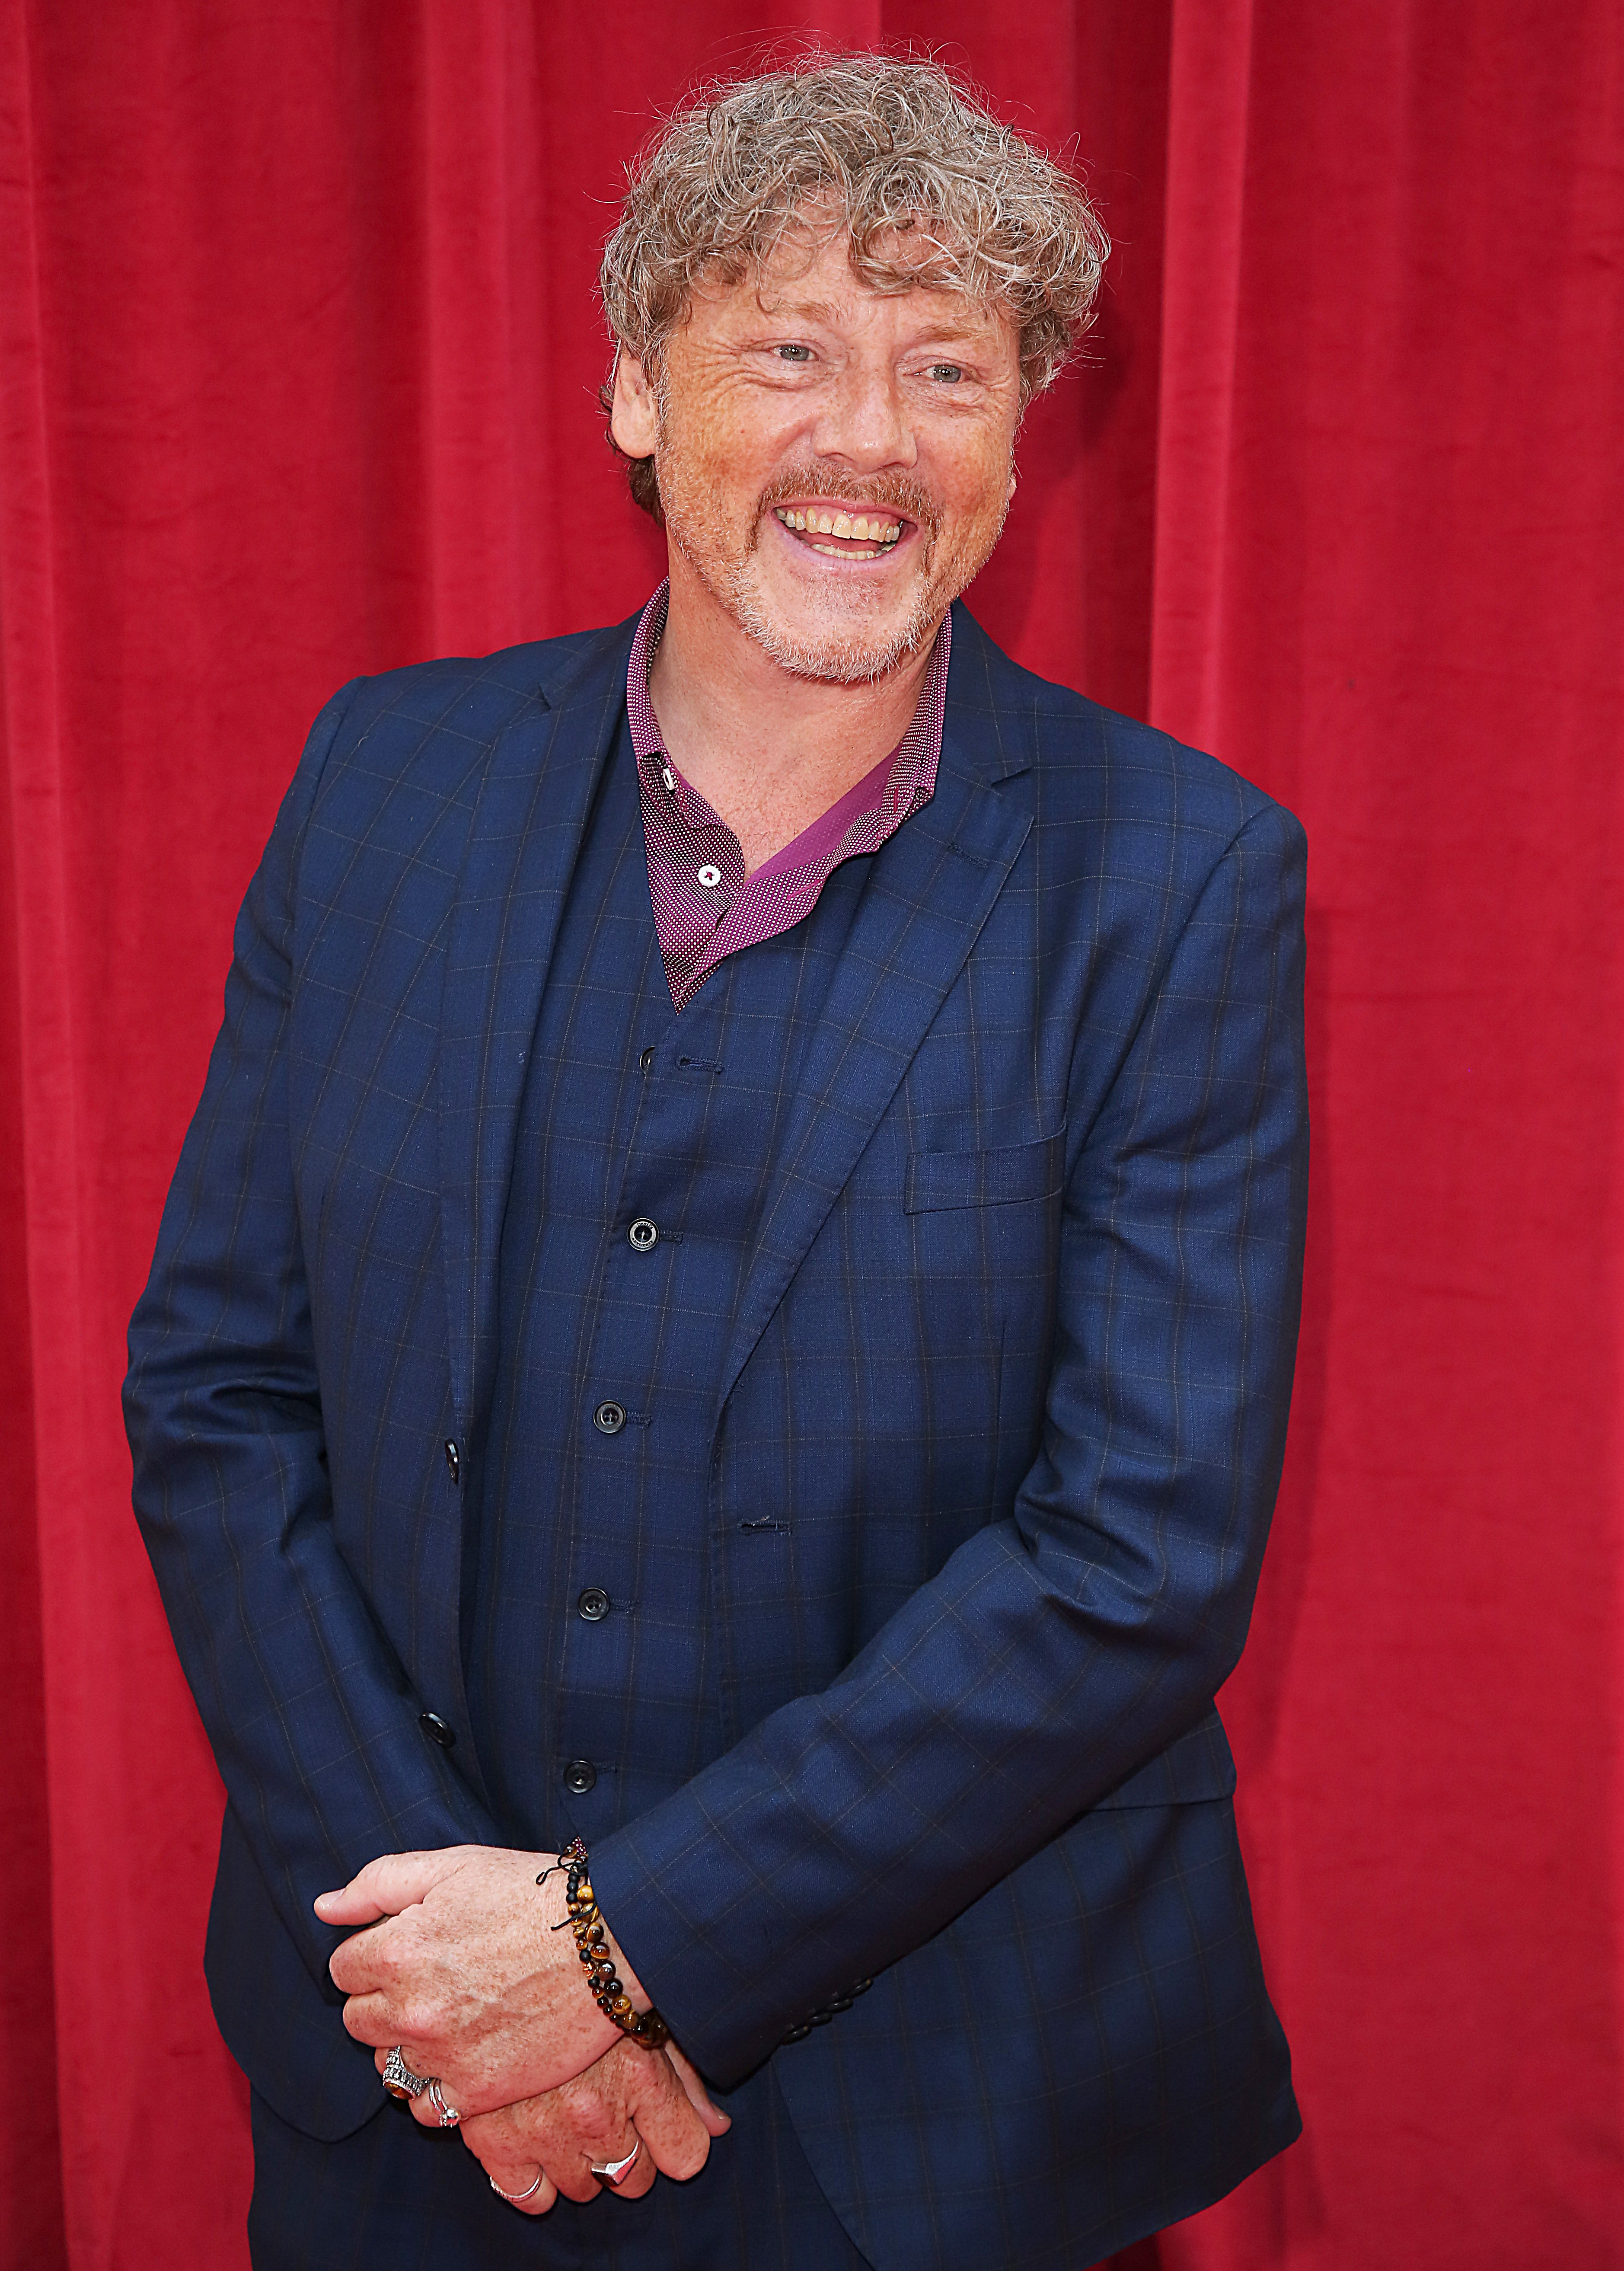 The British Soap Awards 2018, Hackney Town Hall, London UK, 02 June 2018, Photo by Brett D. Cove Pictured: Mark Jordon Ref: SPL5001079 020618 NON-EXCLUSIVE Picture by: Brett D. Cove / Splash News / SplashNews.com Splash News and Pictures Los Angeles: 310-821-2666 New York: 212-619-2666 London: 0207 644 7656 Milan: +39 02 56567623 photodesk@splashnews.com World Rights